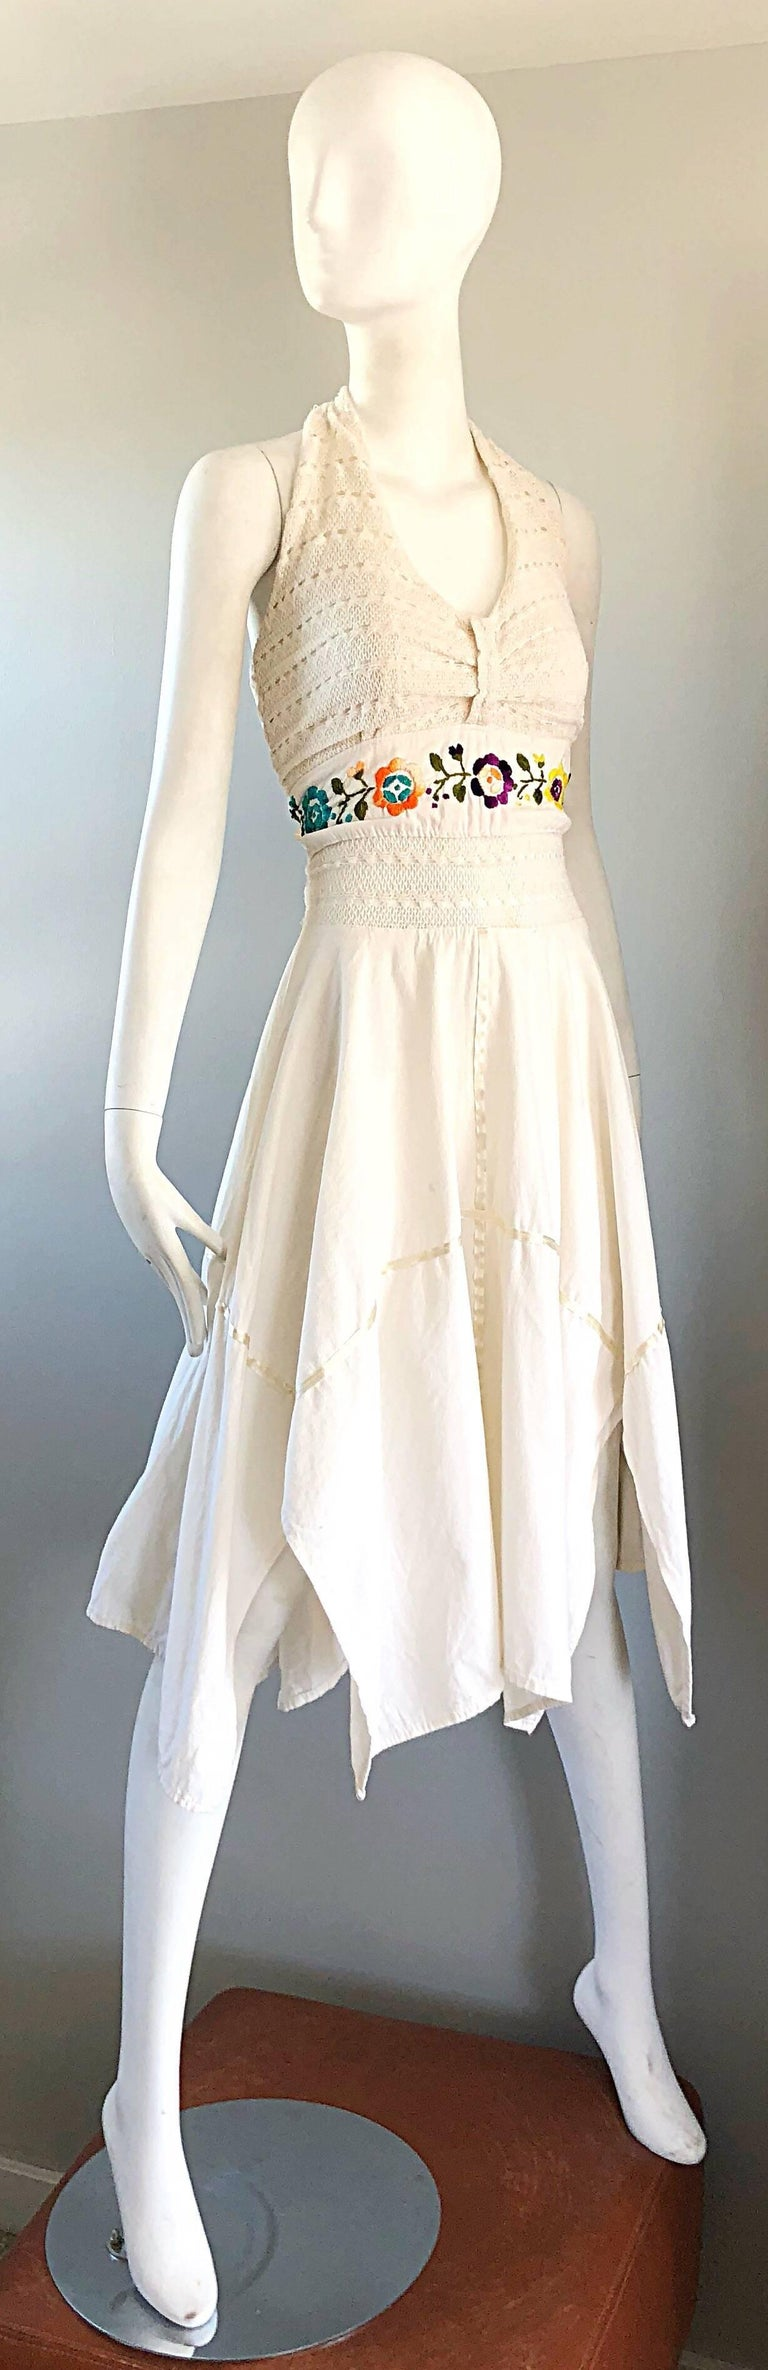 Amazing 1970s Ivory Cotton Embroidered Handkerchief Hem Vintage 70s Halter Dress For Sale 5